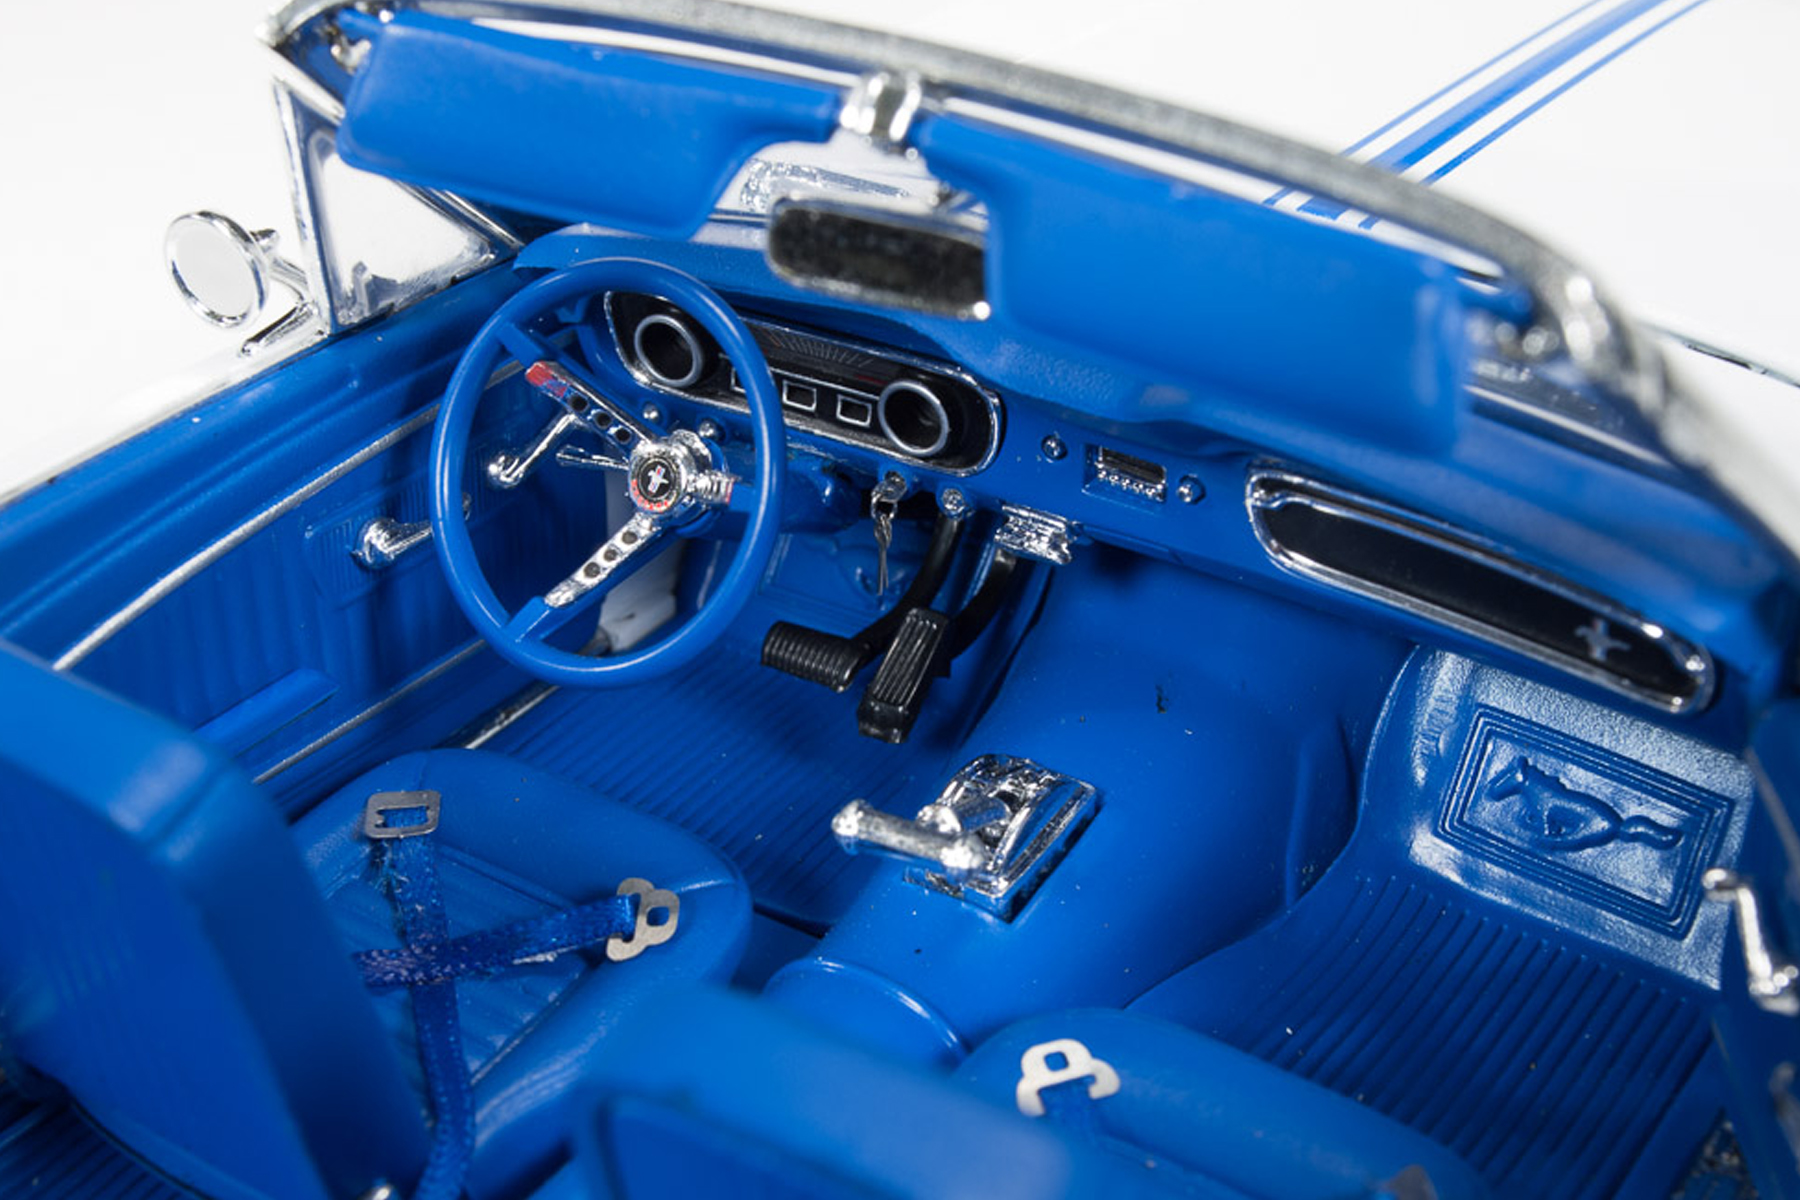 1964 1 2 Ford Mustang Convertible Indy Pace Car Round2 Gt Home Auto World